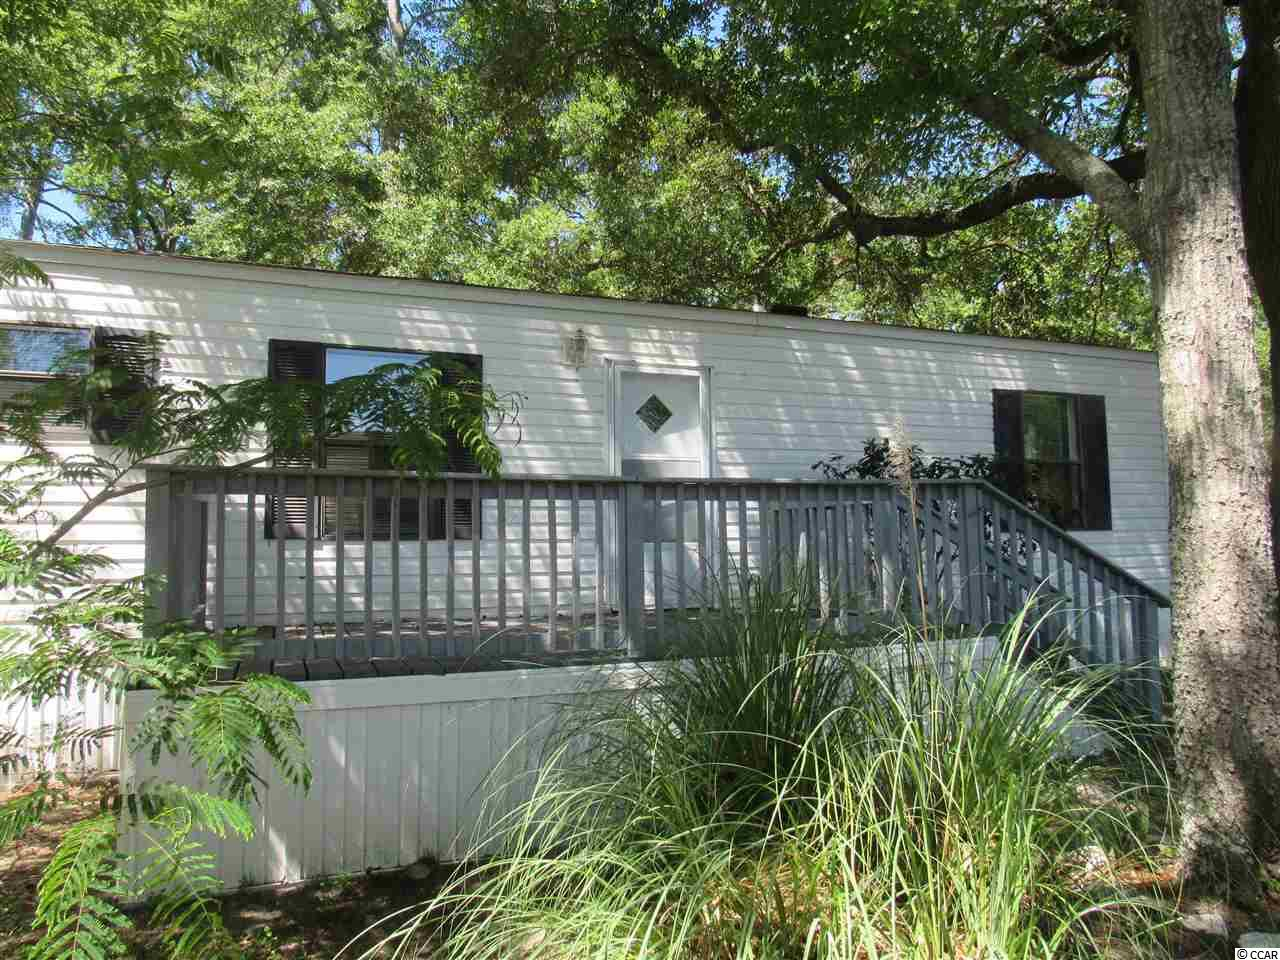 This home is all about location! Within walking distance to the Marshwalk and all Murrells Inlet has to offer - waterfront restaurants, shopping, entertainment, nature and more! This home features 2 bedrooms, 2 full baths, new flooring throughout, split bedroom floor plan, separate laundry room, master bedroom with en suite bath, front/back decks and so much more. Key Largo is a lovely and quiet community perfect for a beach retreat or stay all year! Book your showing today!